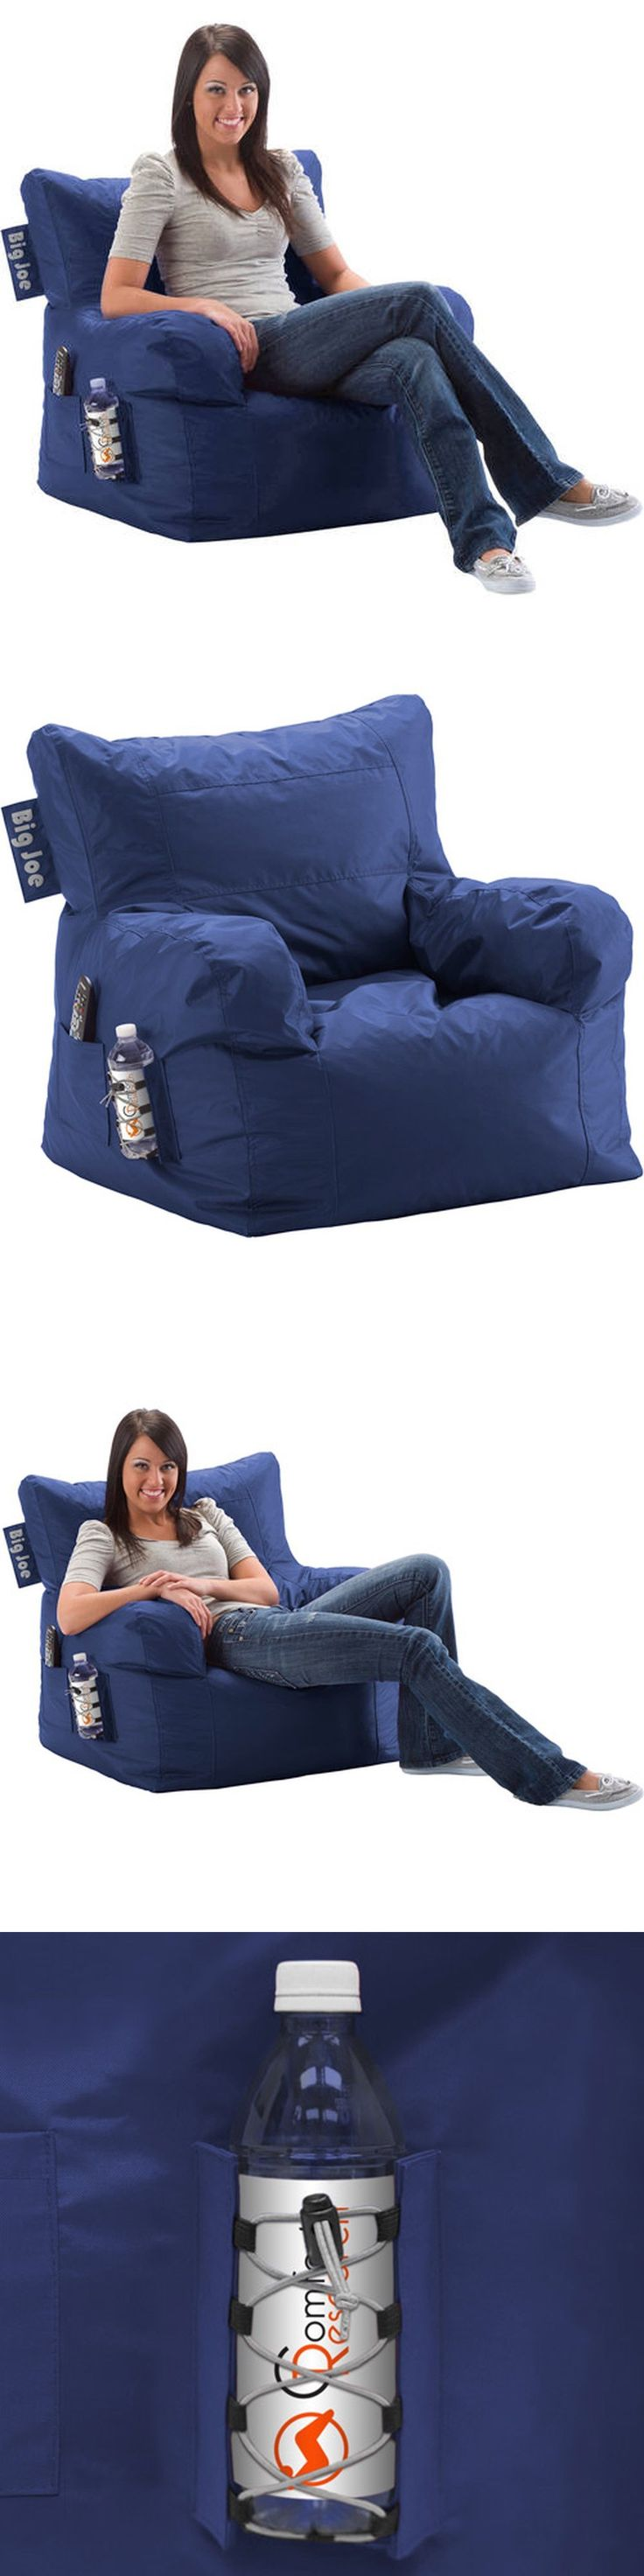 Bean bags and inflatables 48319 bean bag blue large cozy